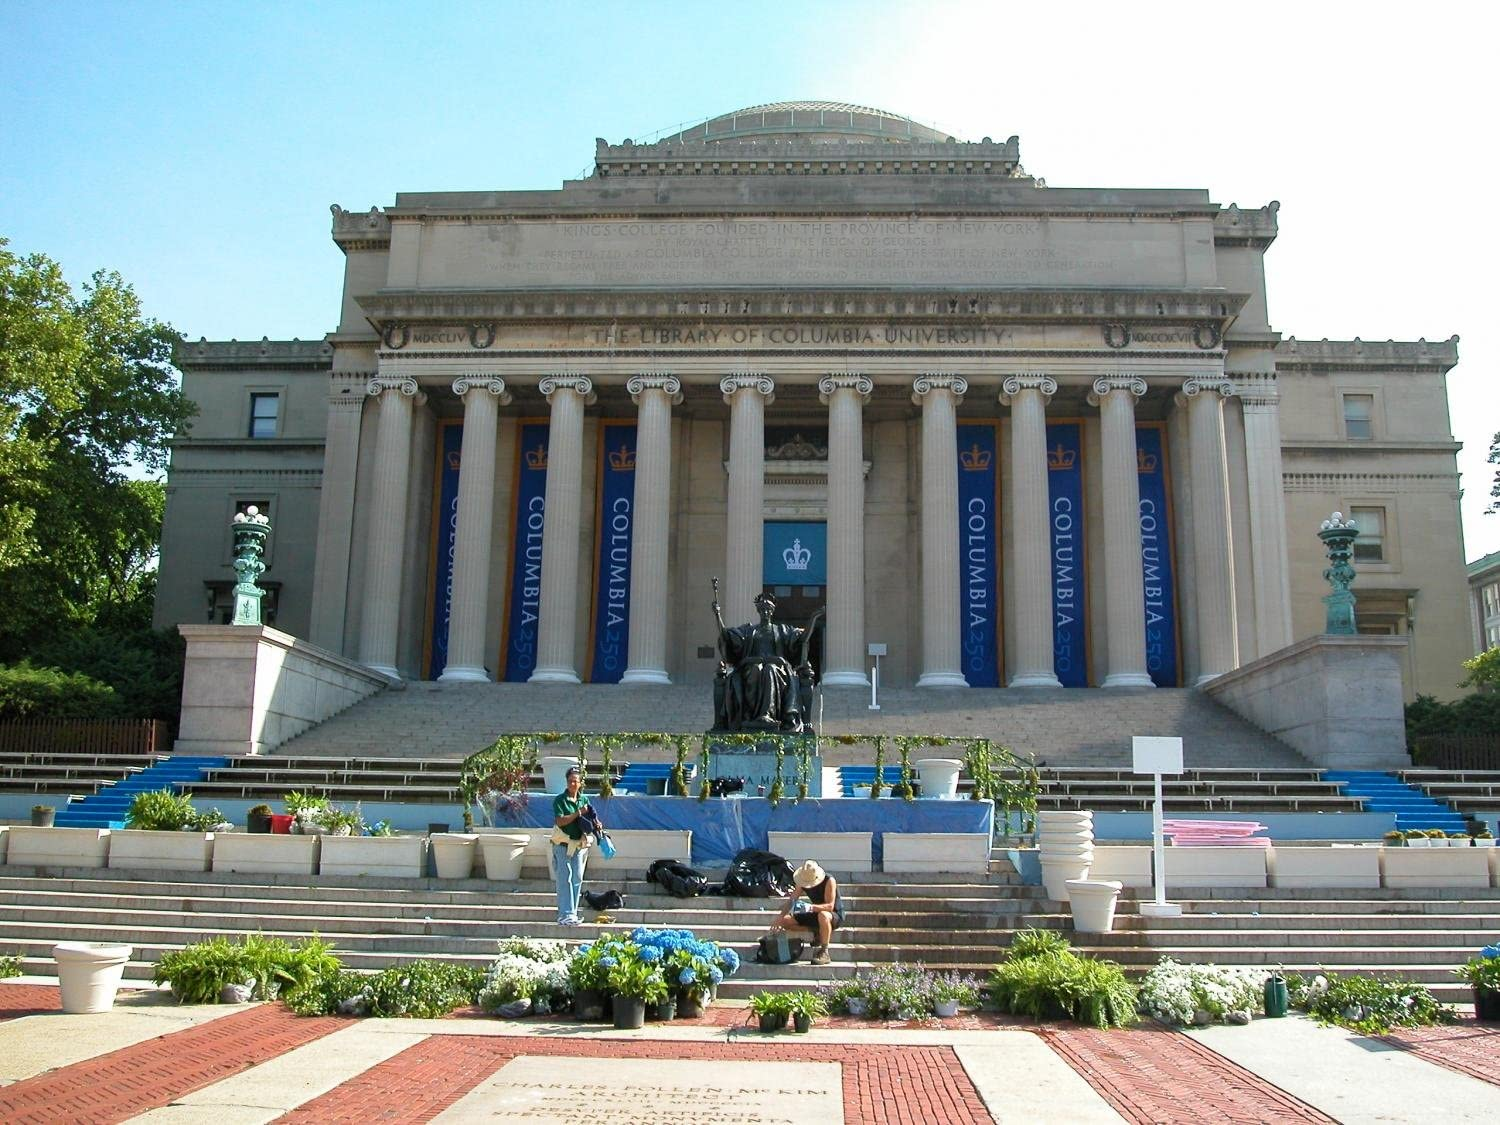 18 in W x 14 in H Wallmonkeys Columbia University in New York City Wall Decal Peel and Stick Graphic WM120054